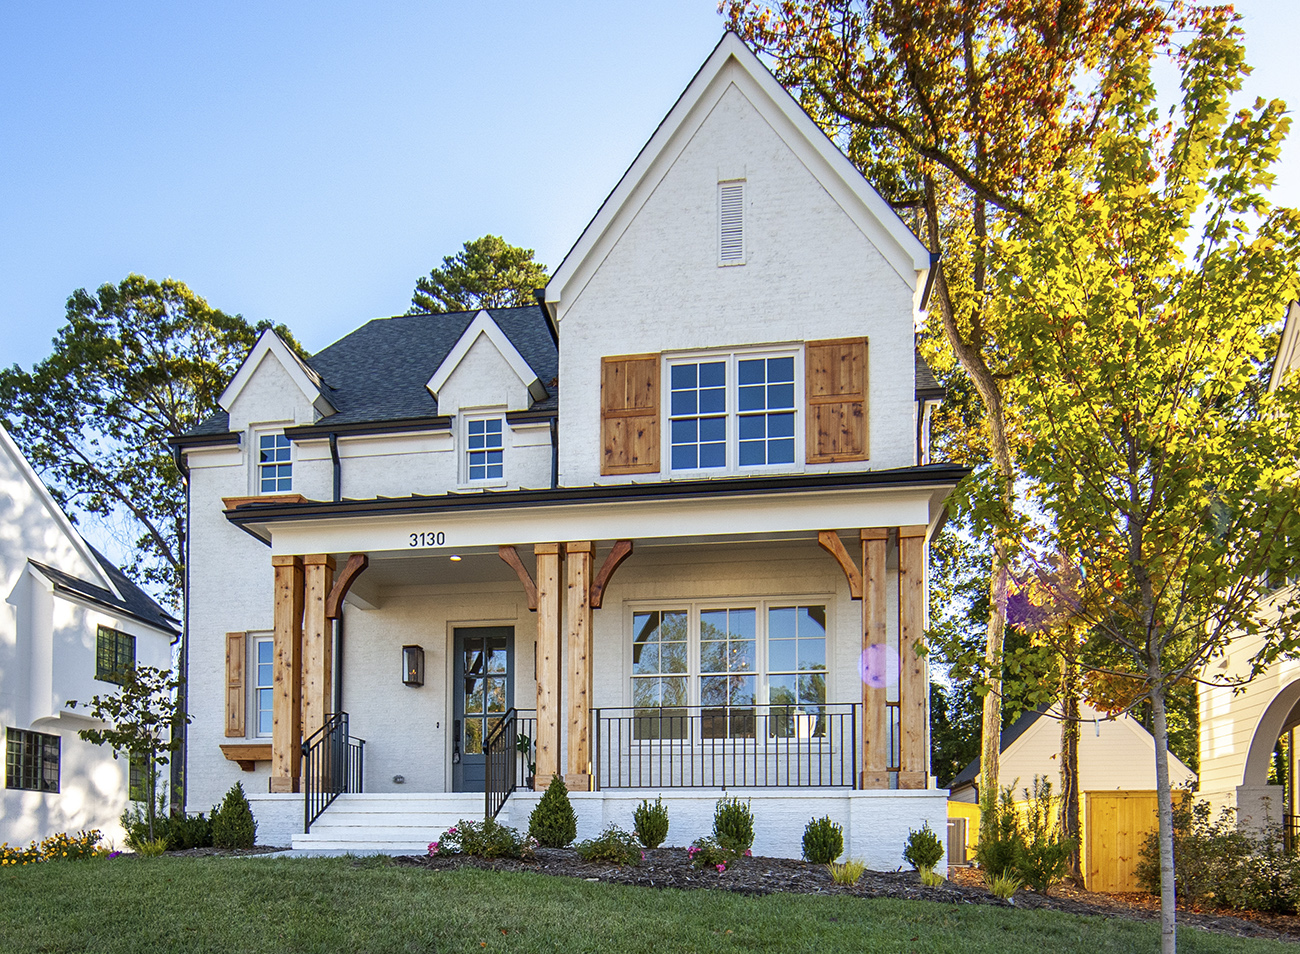 House hunting? Top 10 open houses this weekend including two new builds in Cramers Pond asking $1M+